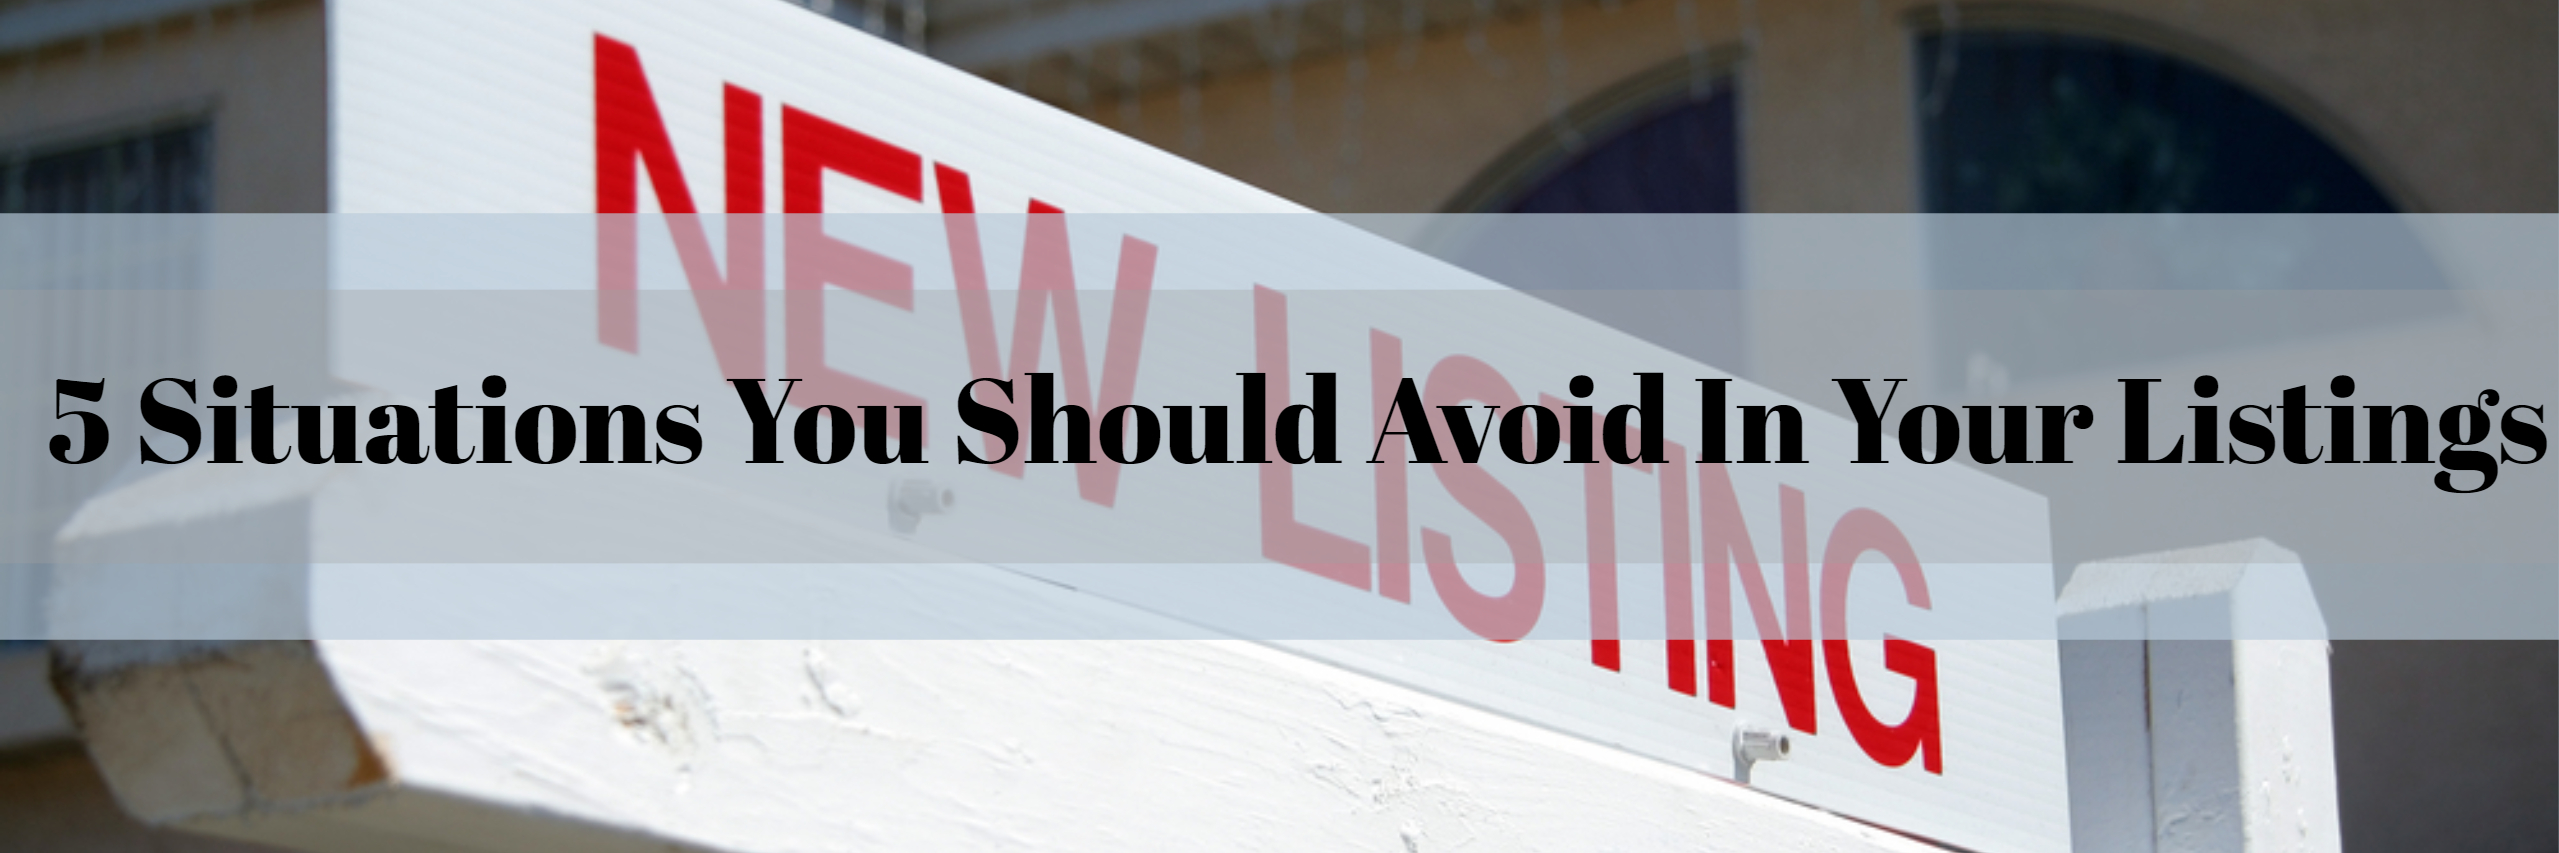 5 Situations You Should Avoid In Your Listings best real estate agent in Los Angeles top producer Paul Argueta